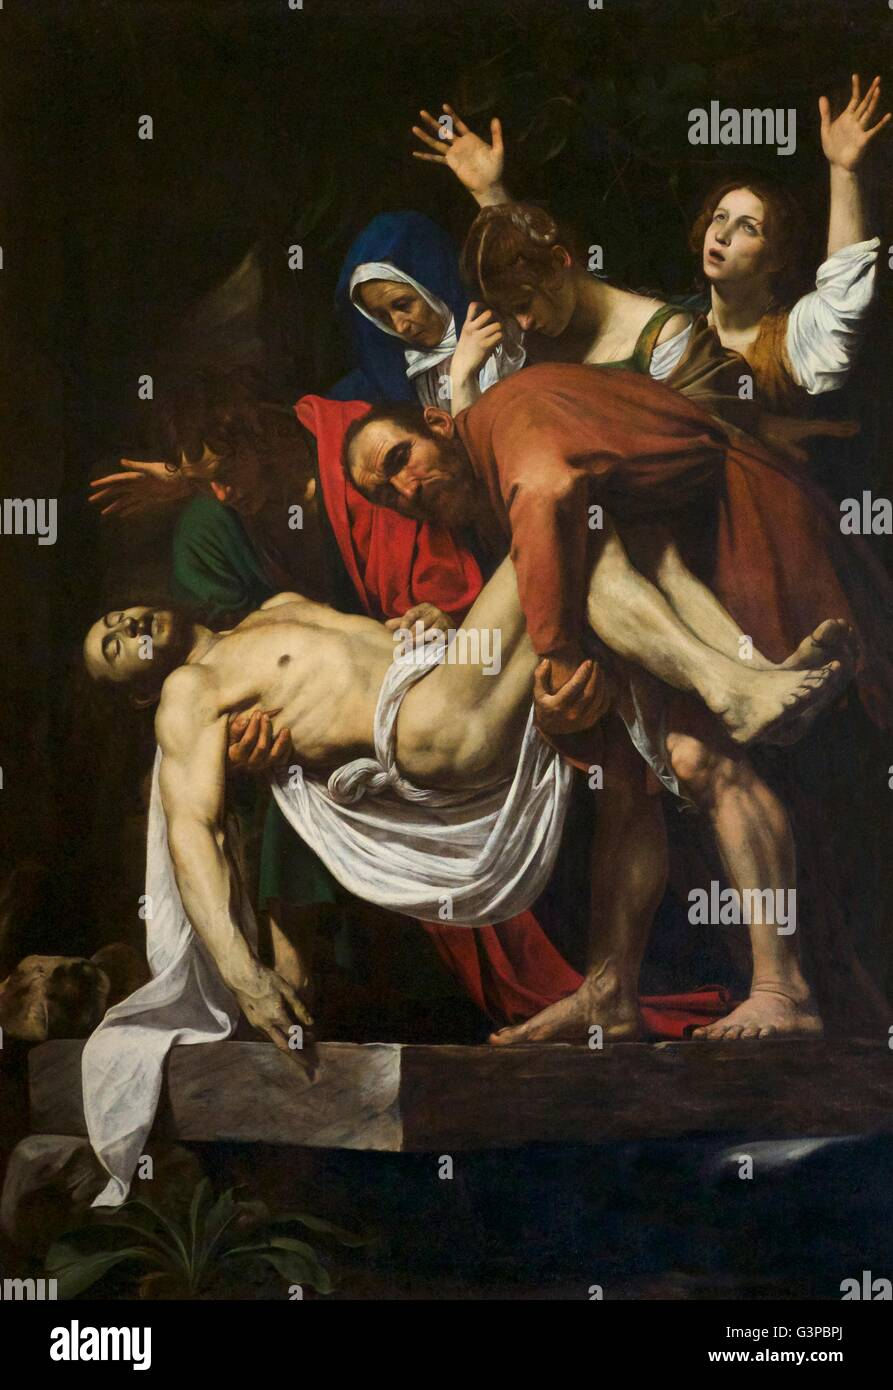 The Entombment of Christ,  by Caravaggio,1602–1603, Pinacoteca, Vatican Museums, Rome, Italy - Stock Image